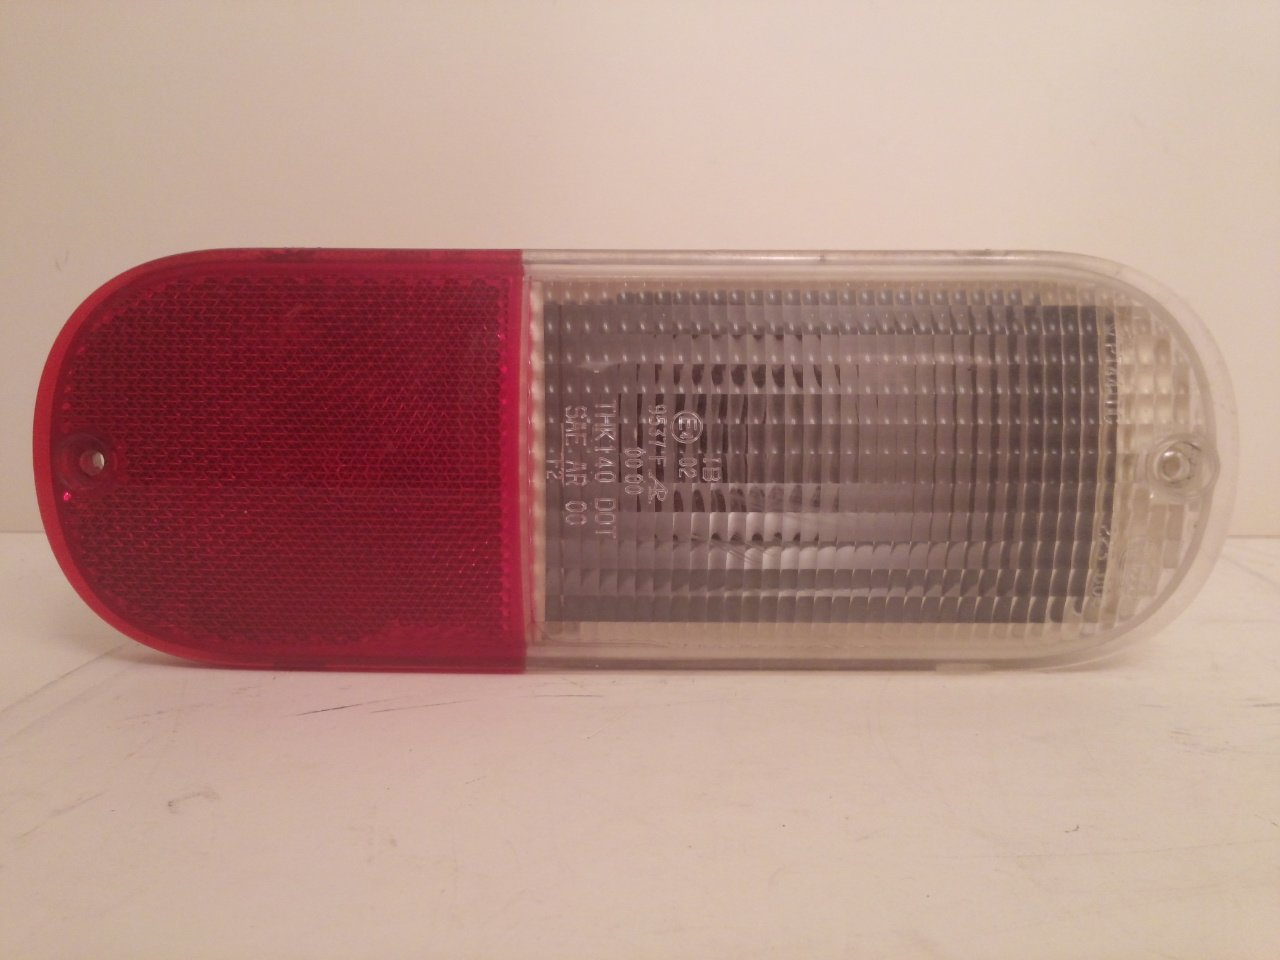 2001-2005 Chrysler PT Cruiser Rear Bumper Reverse Light Back Up Left or RH OEM